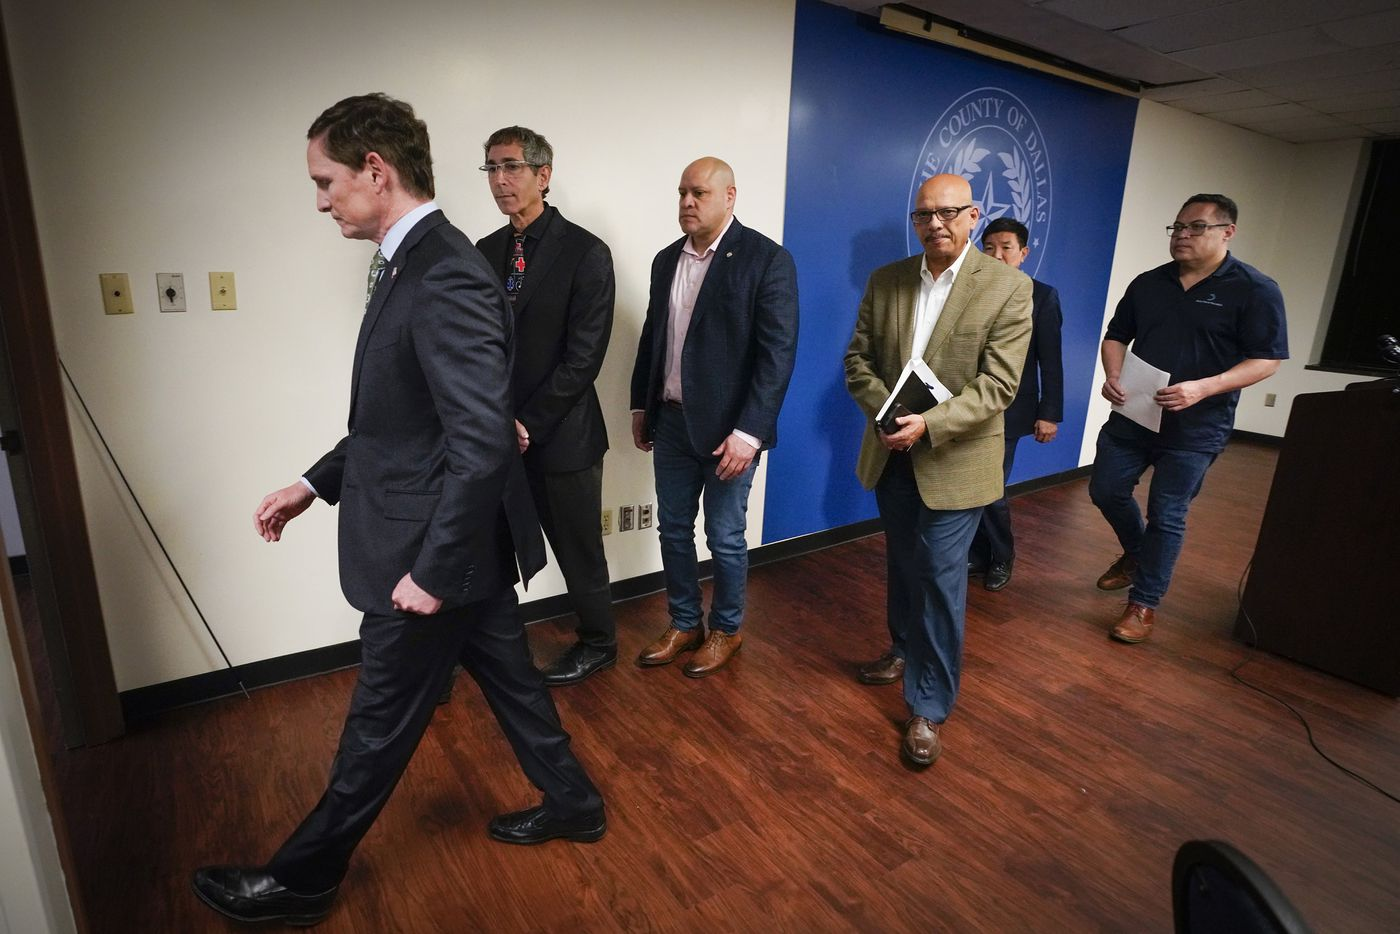 Dallas County Judge Clay Jenkins (left) departs a press conference with other city and county officials after announcing that a local state of disaster for public health emergency has been declared in the county, due to more cases of the new coronavirus, late Thursday, March 12. 2020, in Dallas. With him, from left, are Dr. Marshal Isaacs, Dallas Mayor Pro Tem Adam Medrano​, Rocky Vaz, City of Dallas Director of Emergency Management, Dr. Philip Huang, Director of Dallas County Health and Human Services, and Dallas city council member Omar Narvaez.